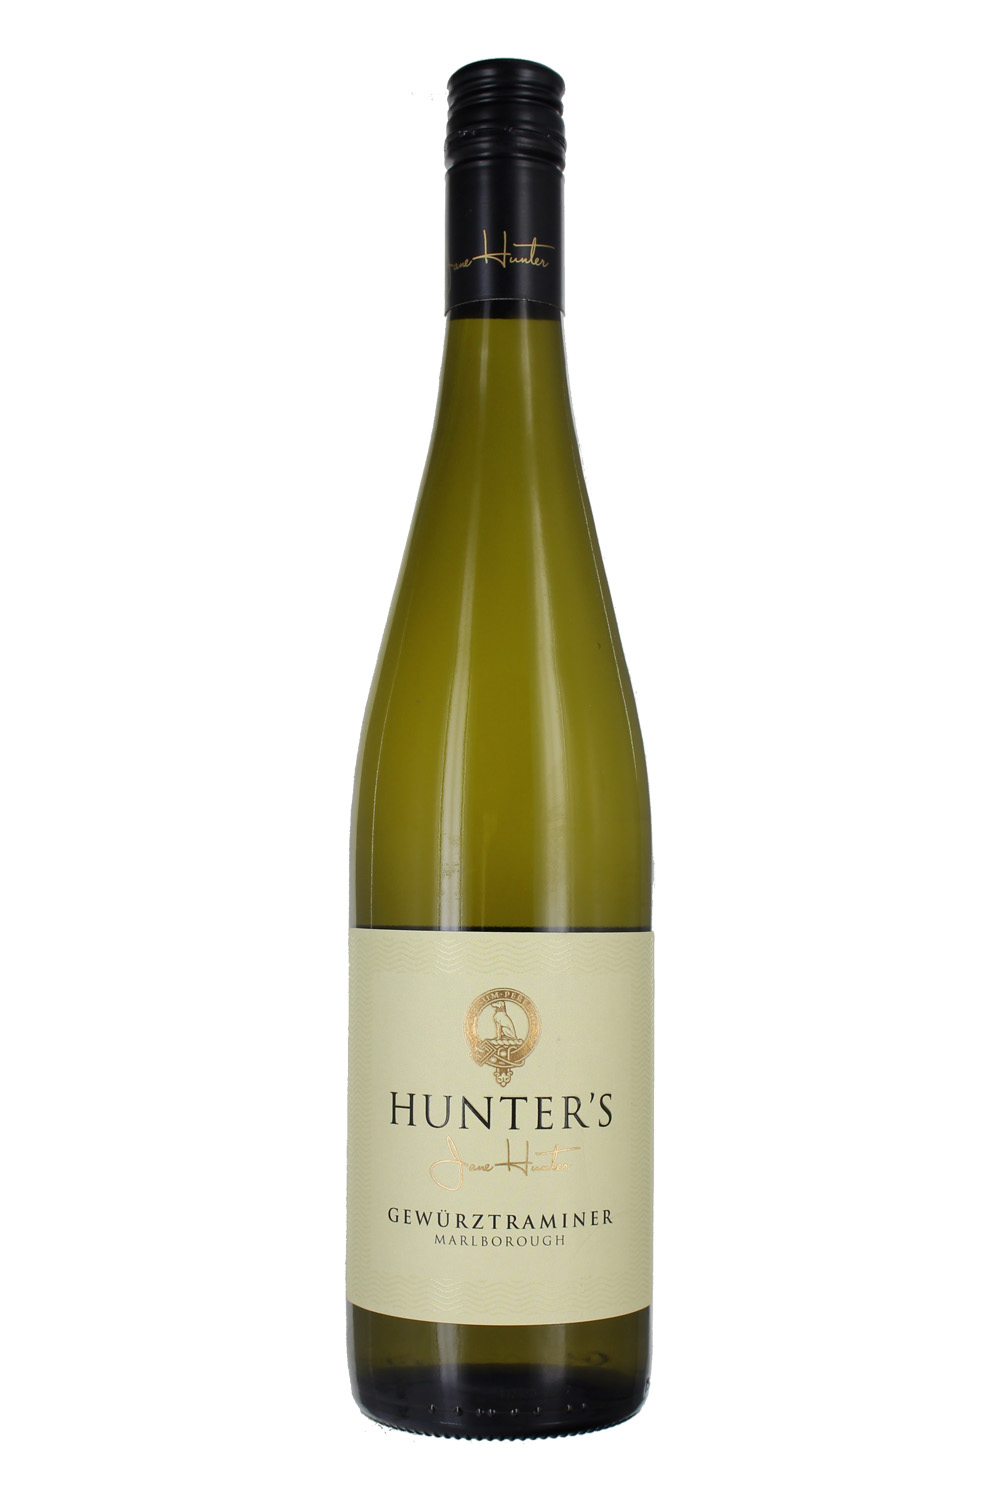 2018 Hunter's Gewurztraminer, Marlborough, New Zealand